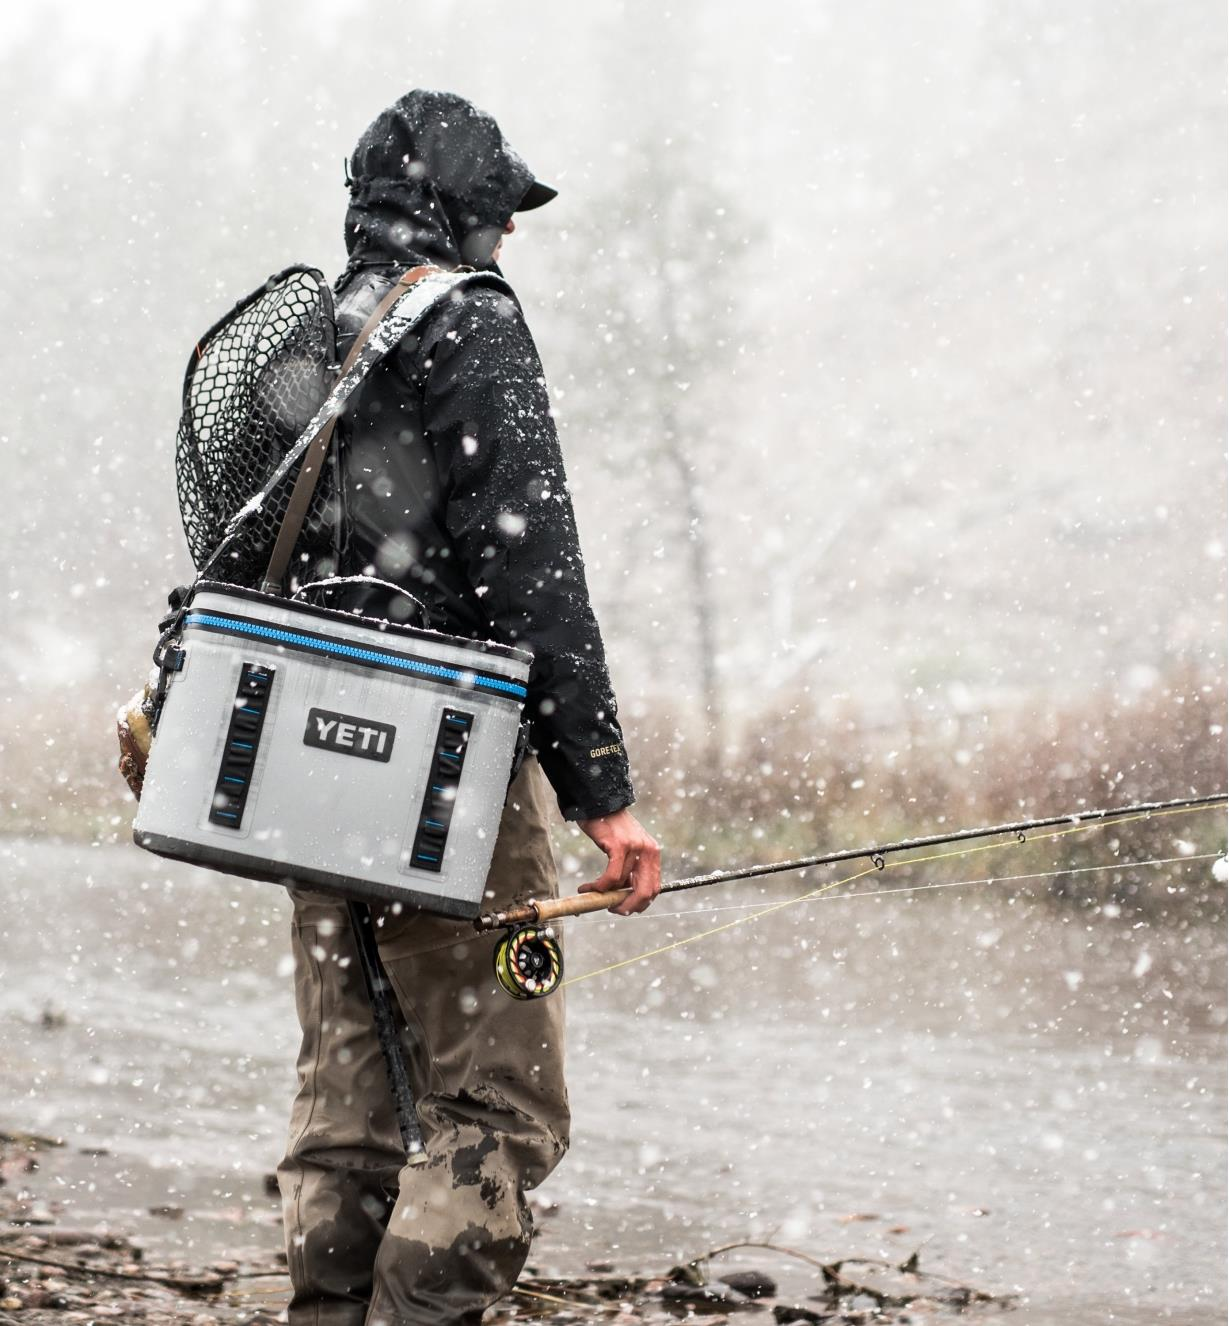 A man carrying a Yeti soft-sided cooler by the shoulder strap while fishing in a snowy location